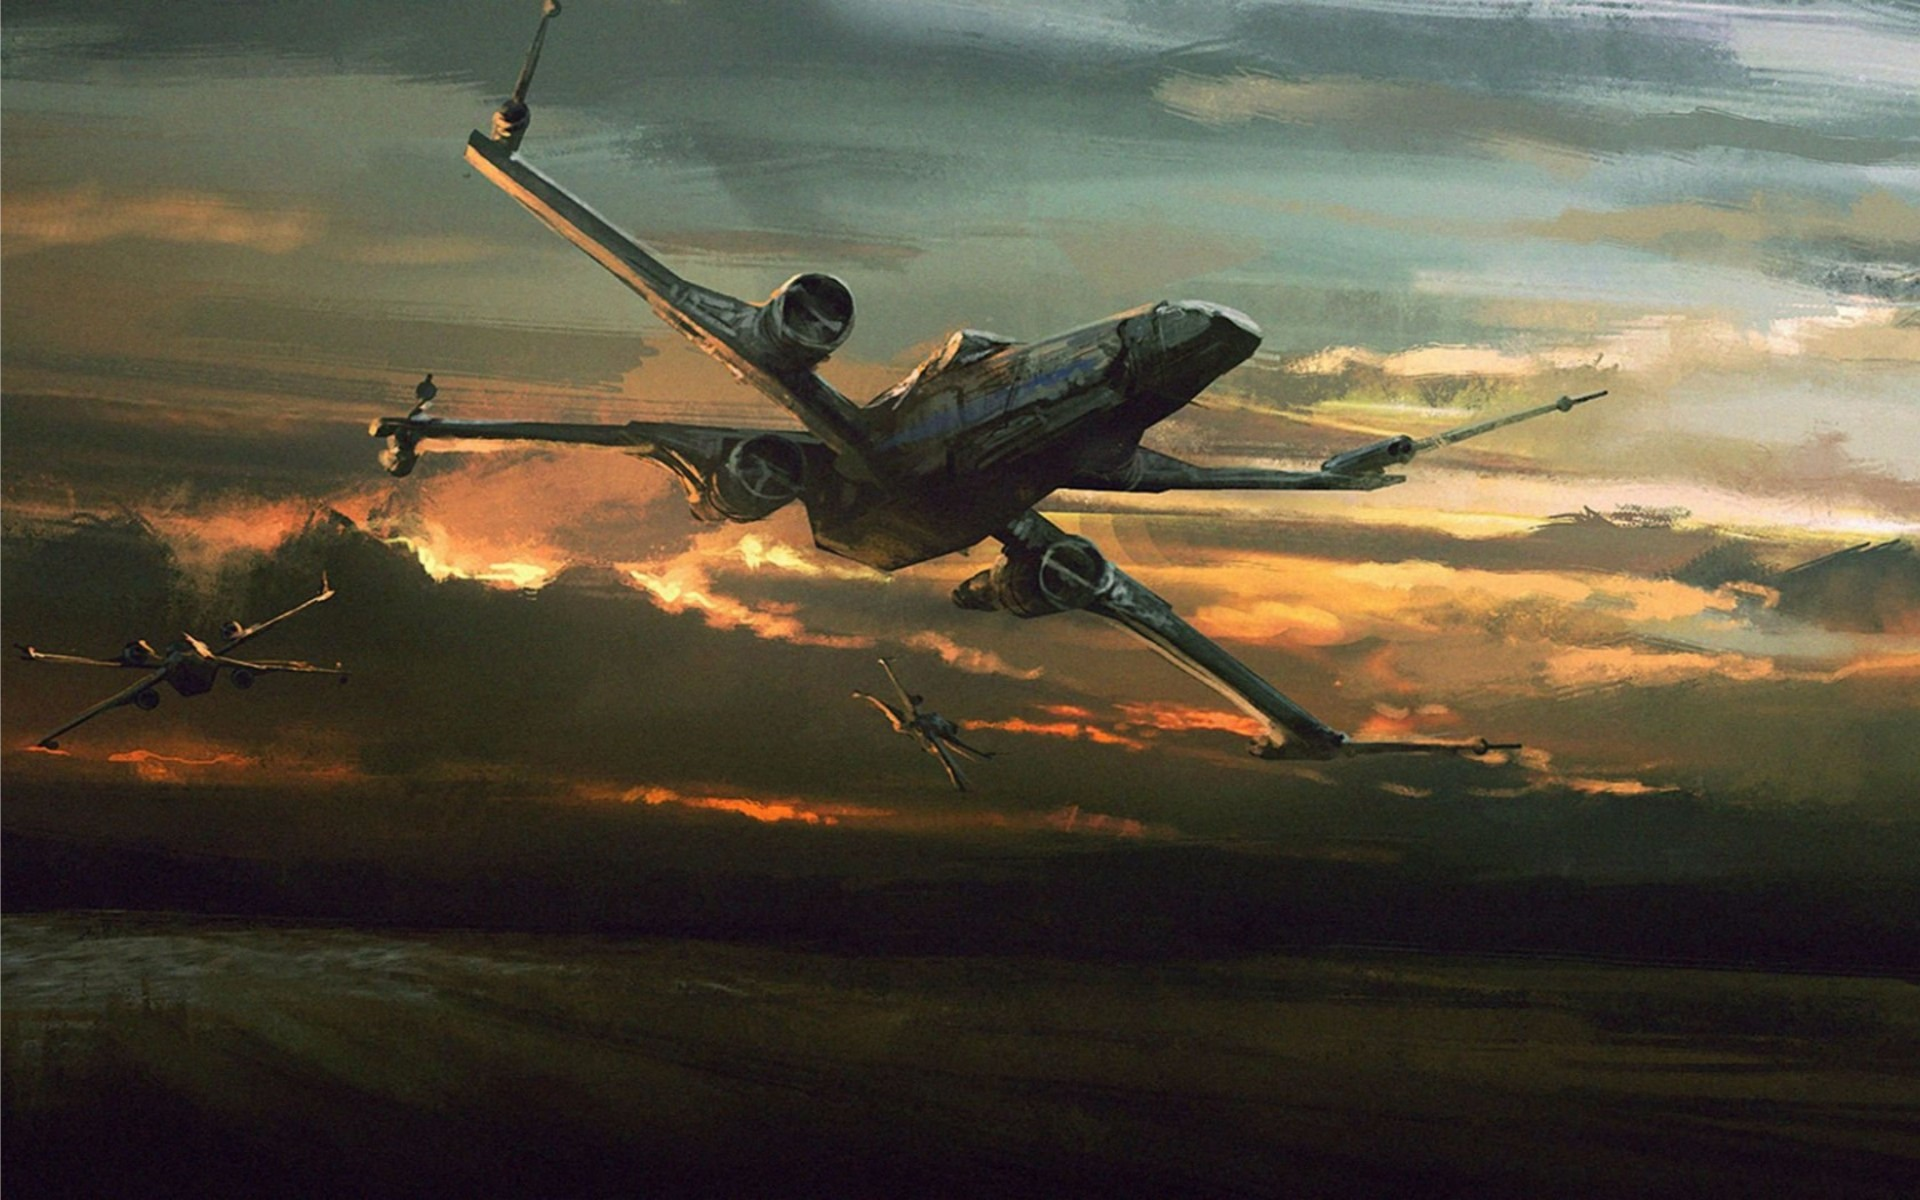 Best X Wing Fighter Star Wars The Force Awakens 4K 1920x1200